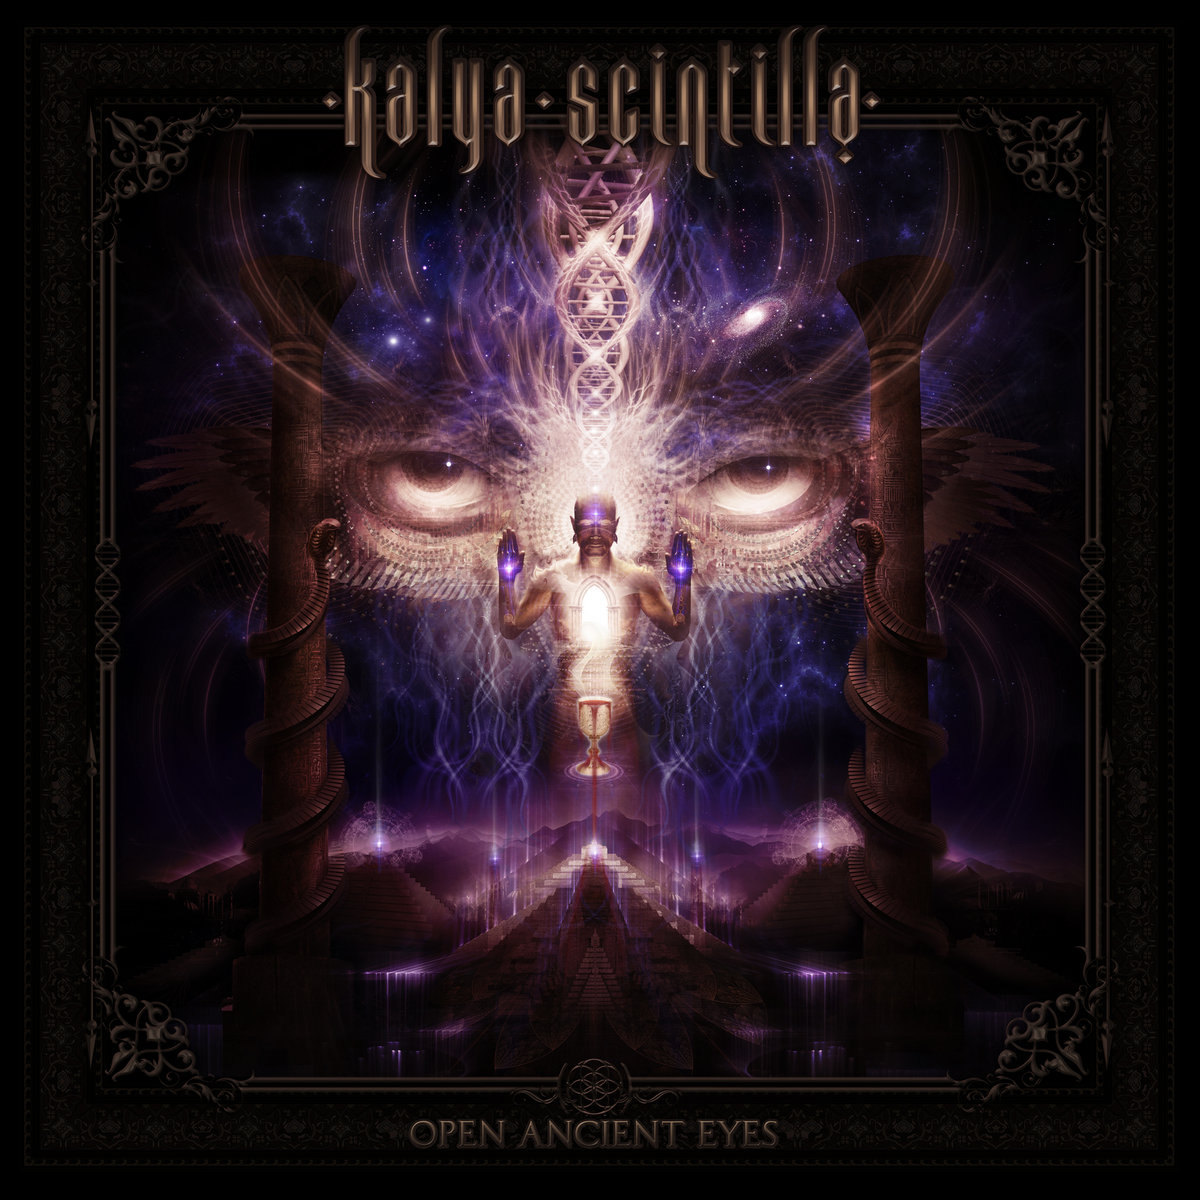 Kalya Scintilla feat. Avari - Kamakshi Devi @ 'Open Ancient Eyes' album (432hz, electronic)